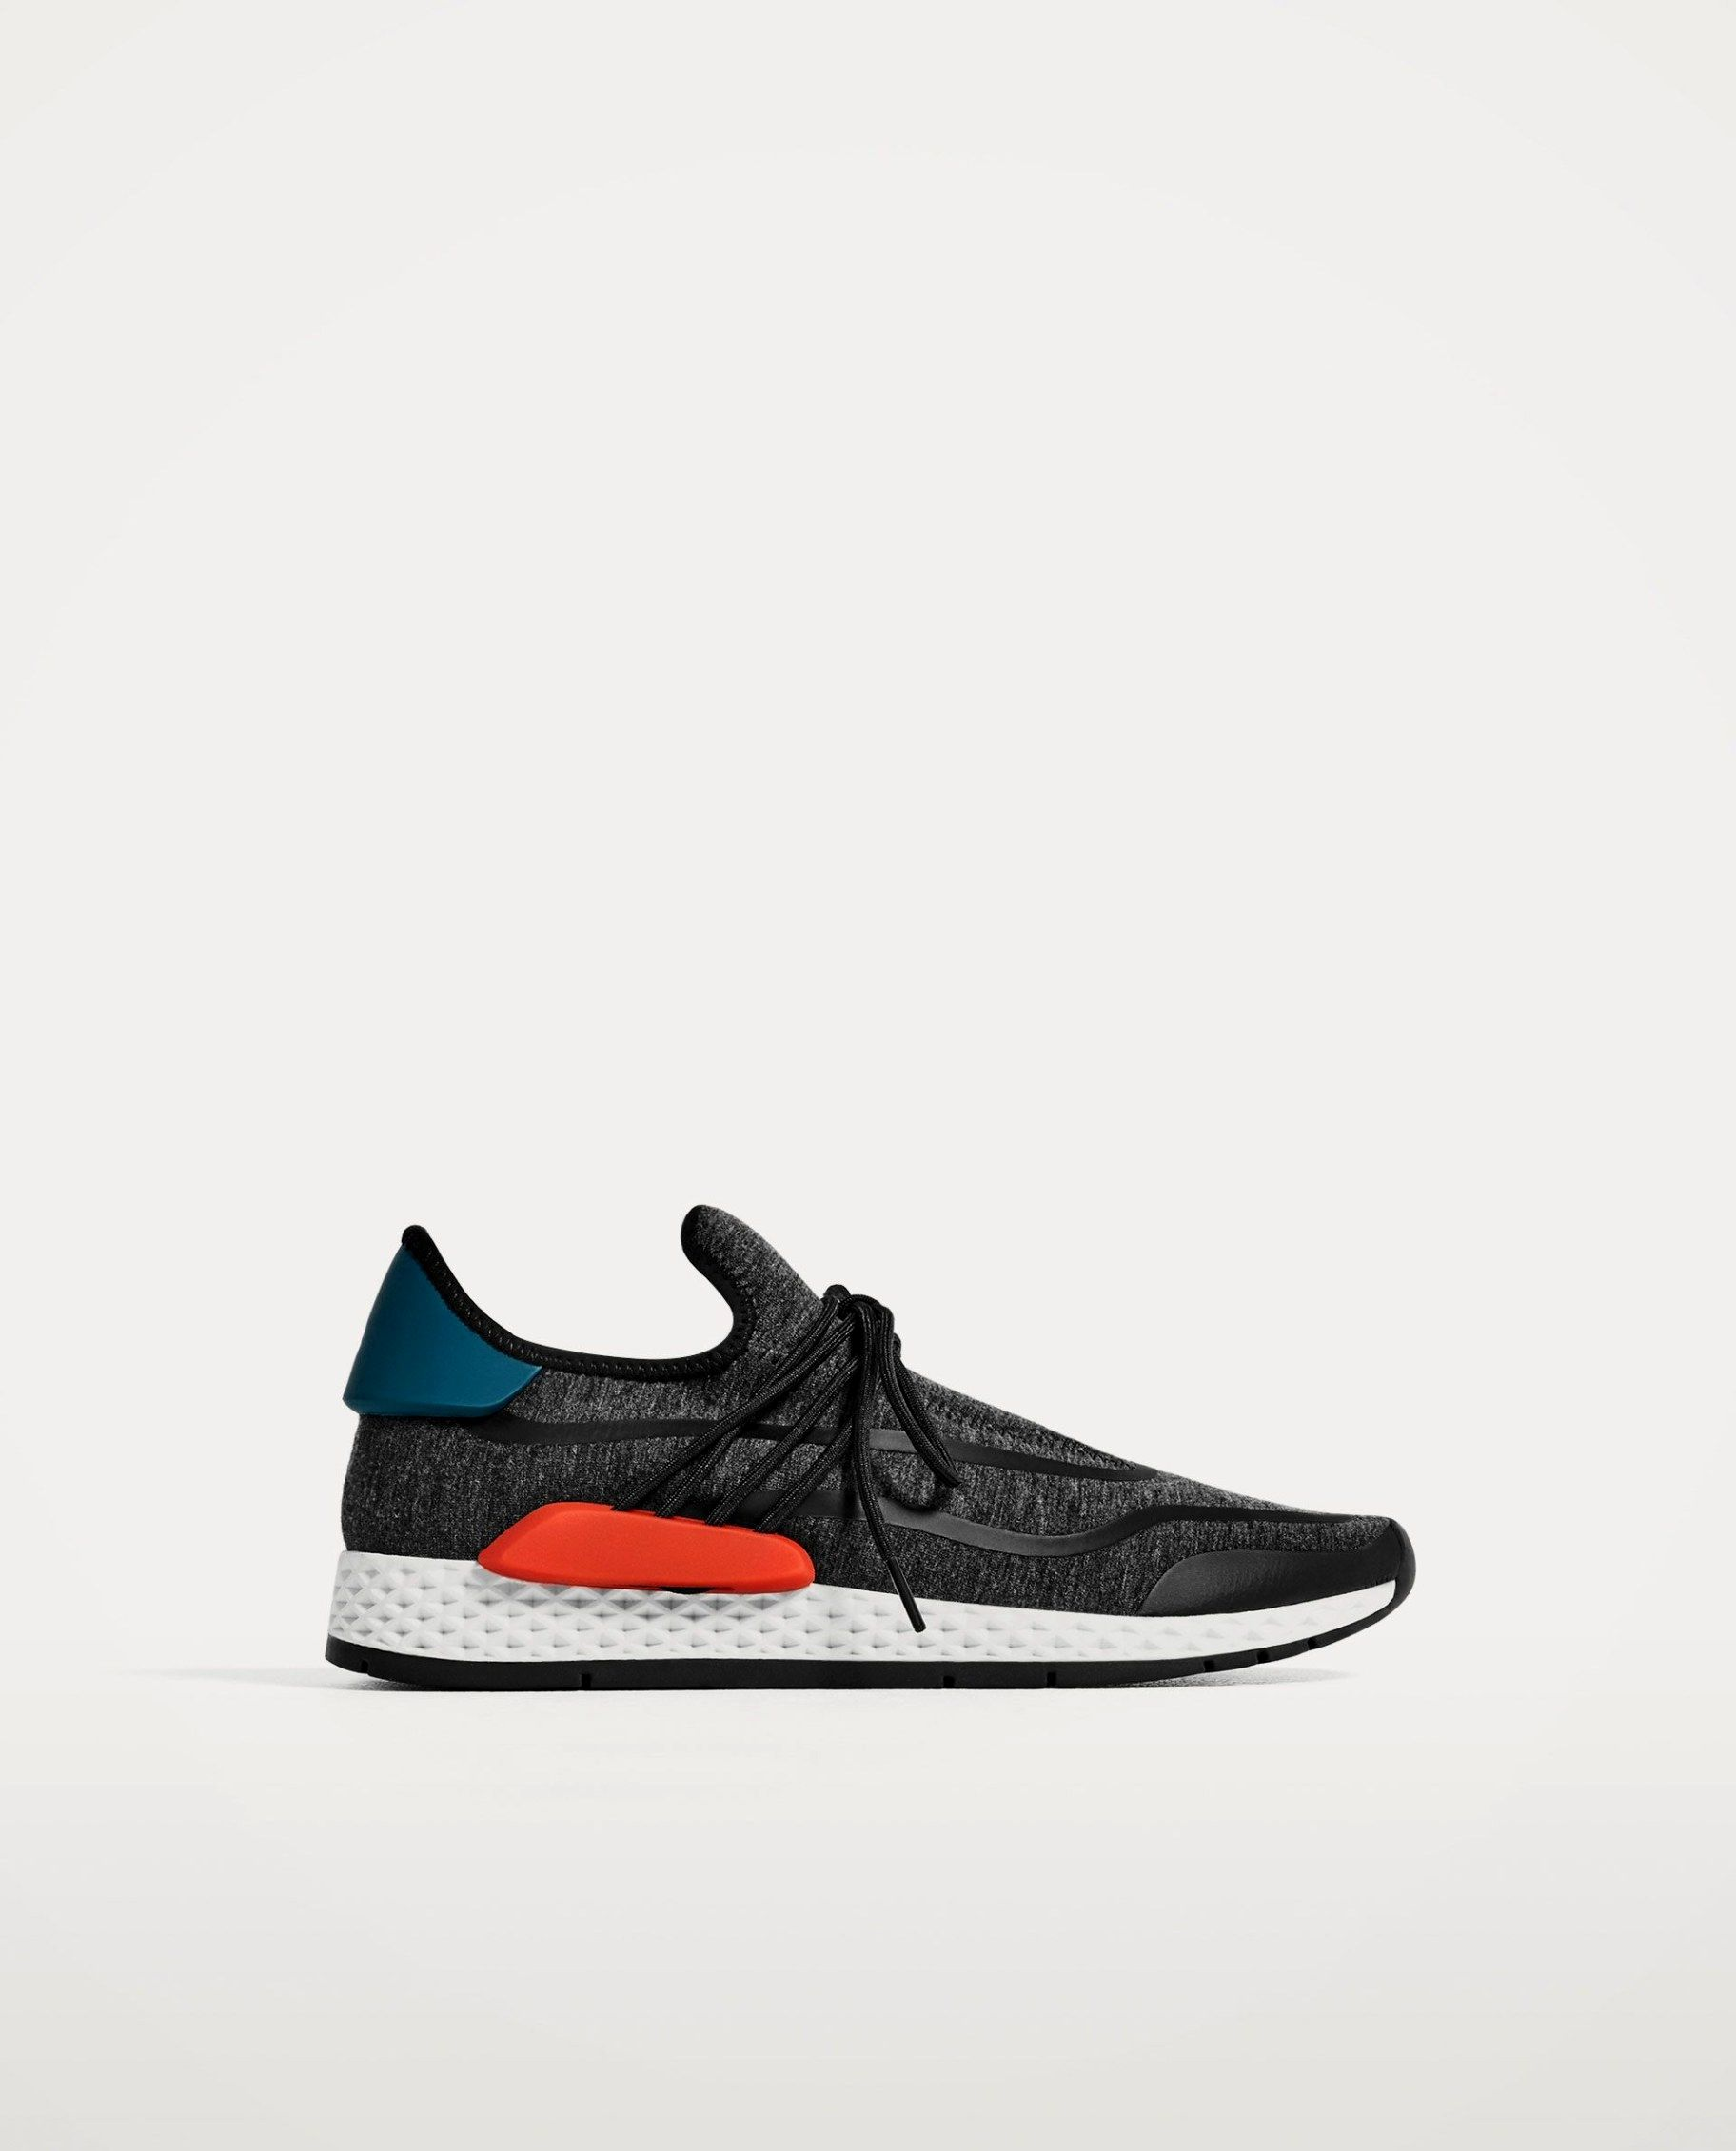 c65bea998 In search of more info on sneakers  Then simply please click right here to  get further details. Related info. Mens X Wide Sneakers.